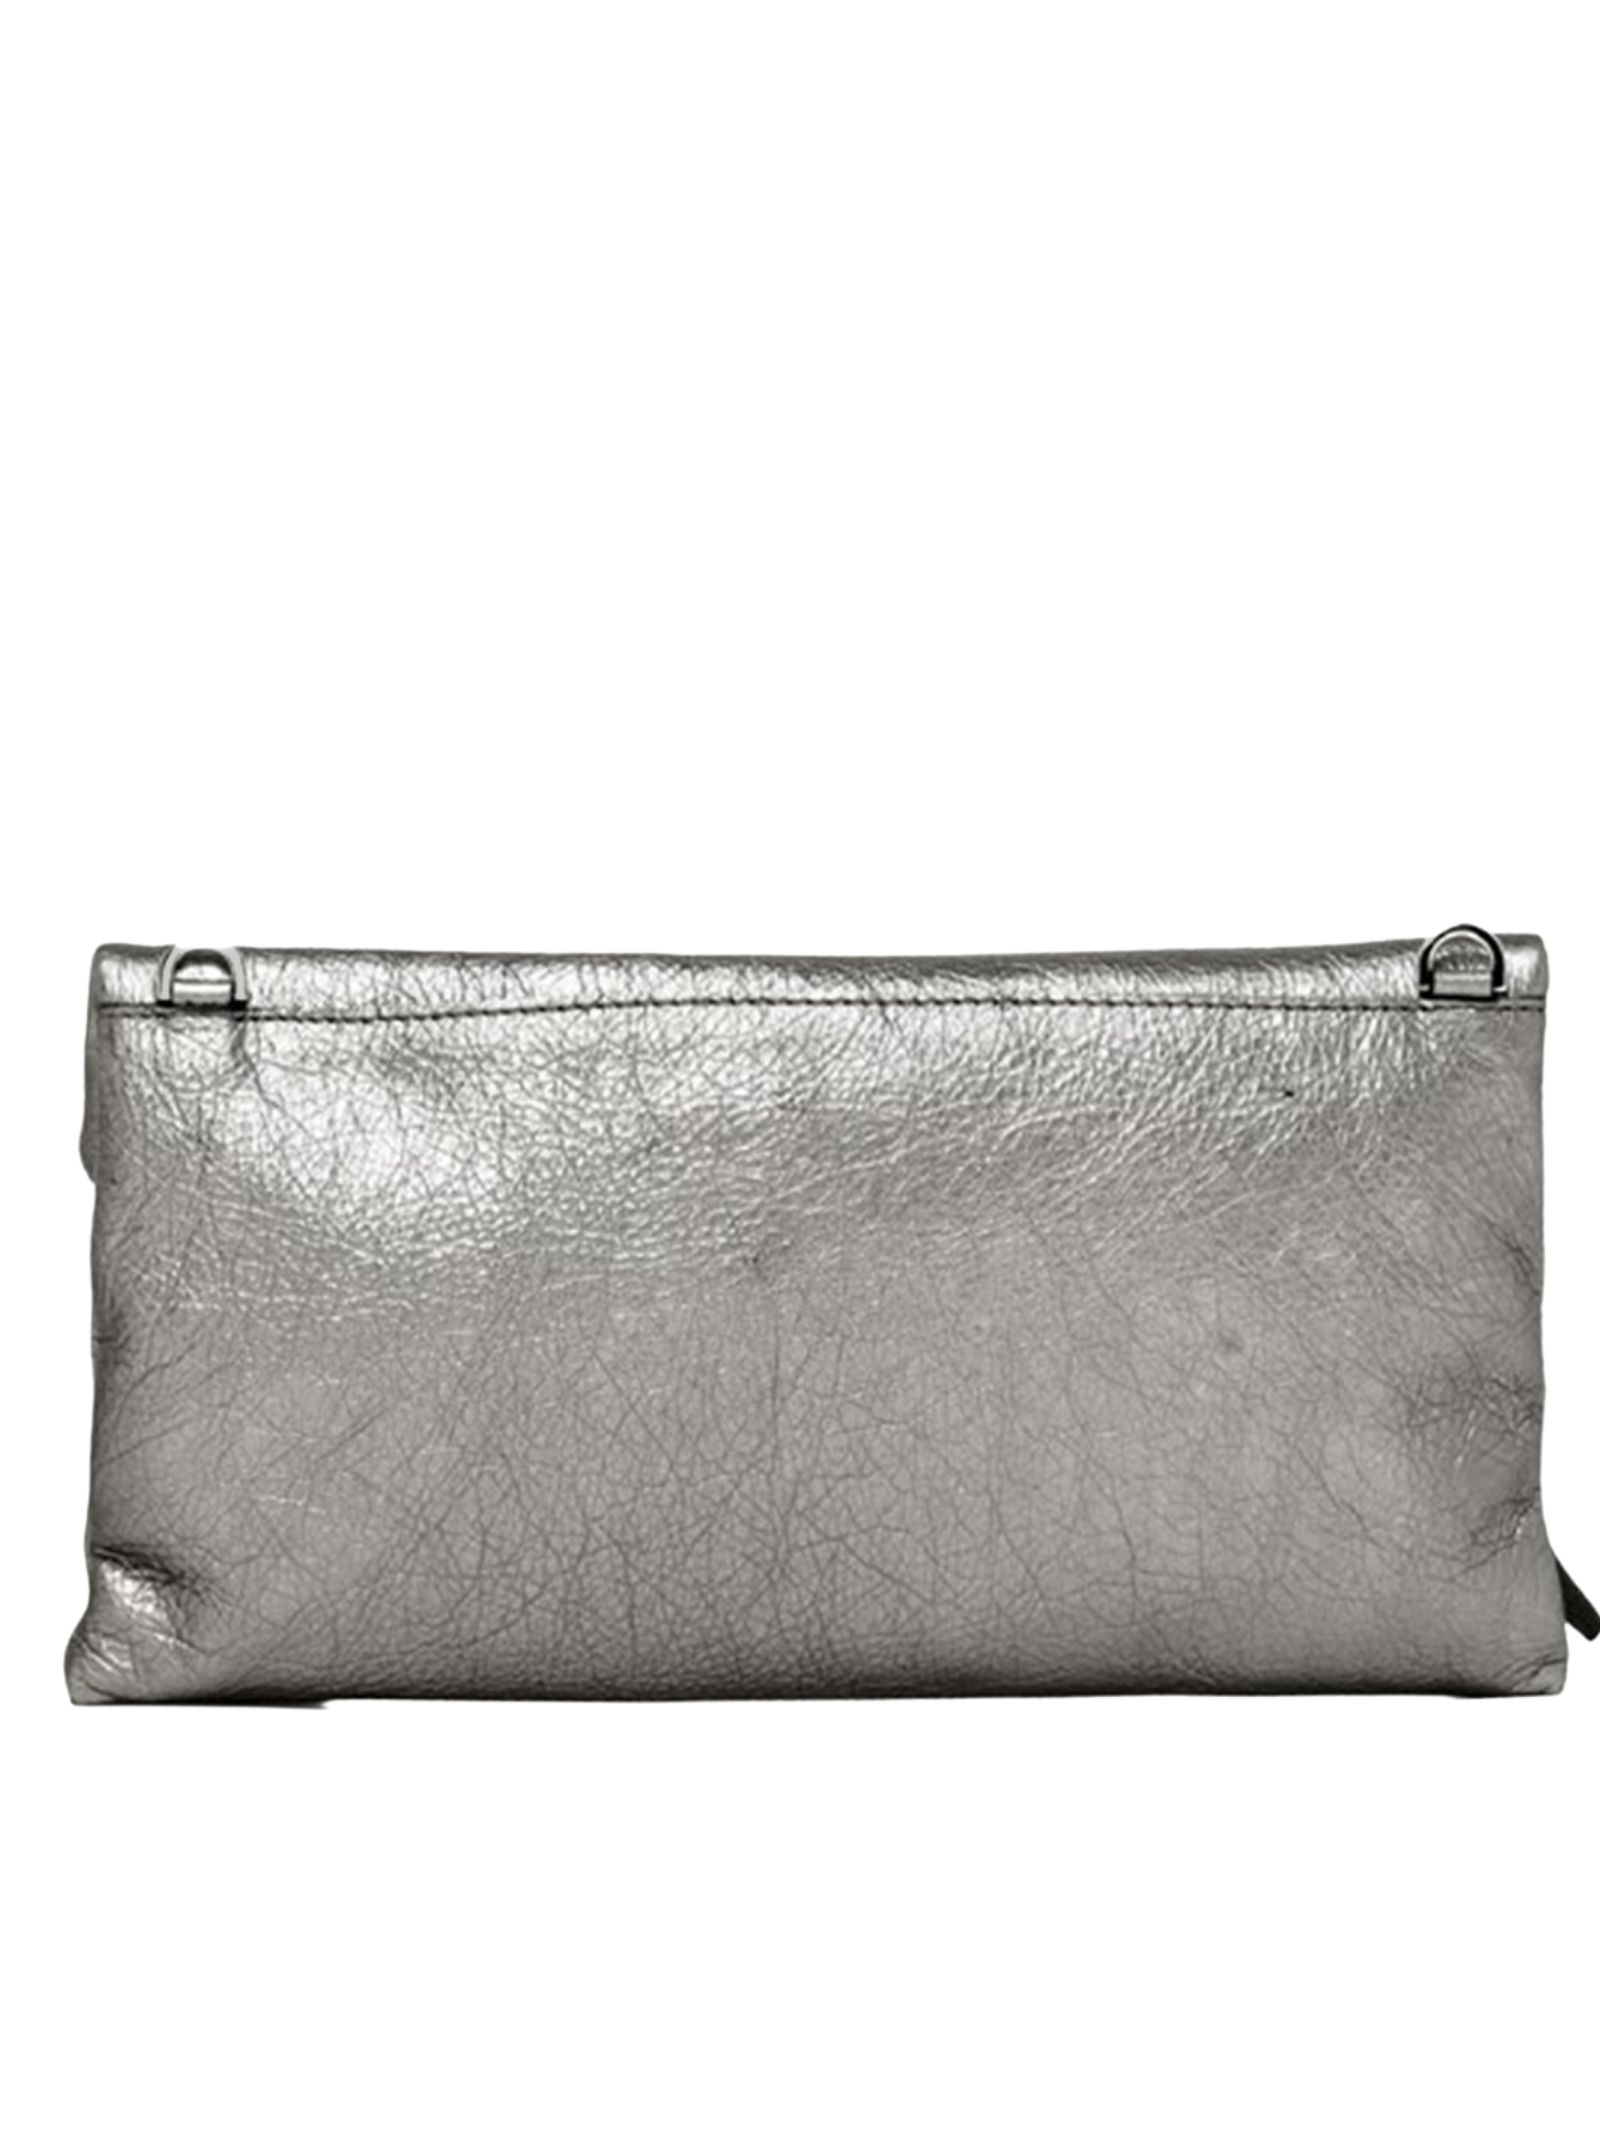 Cherry Small Women's Clutch Bag In Silver Leather With Tone Removable Shoulder Strap Gianni Chiarini   Bags and backpacks   BS7374359